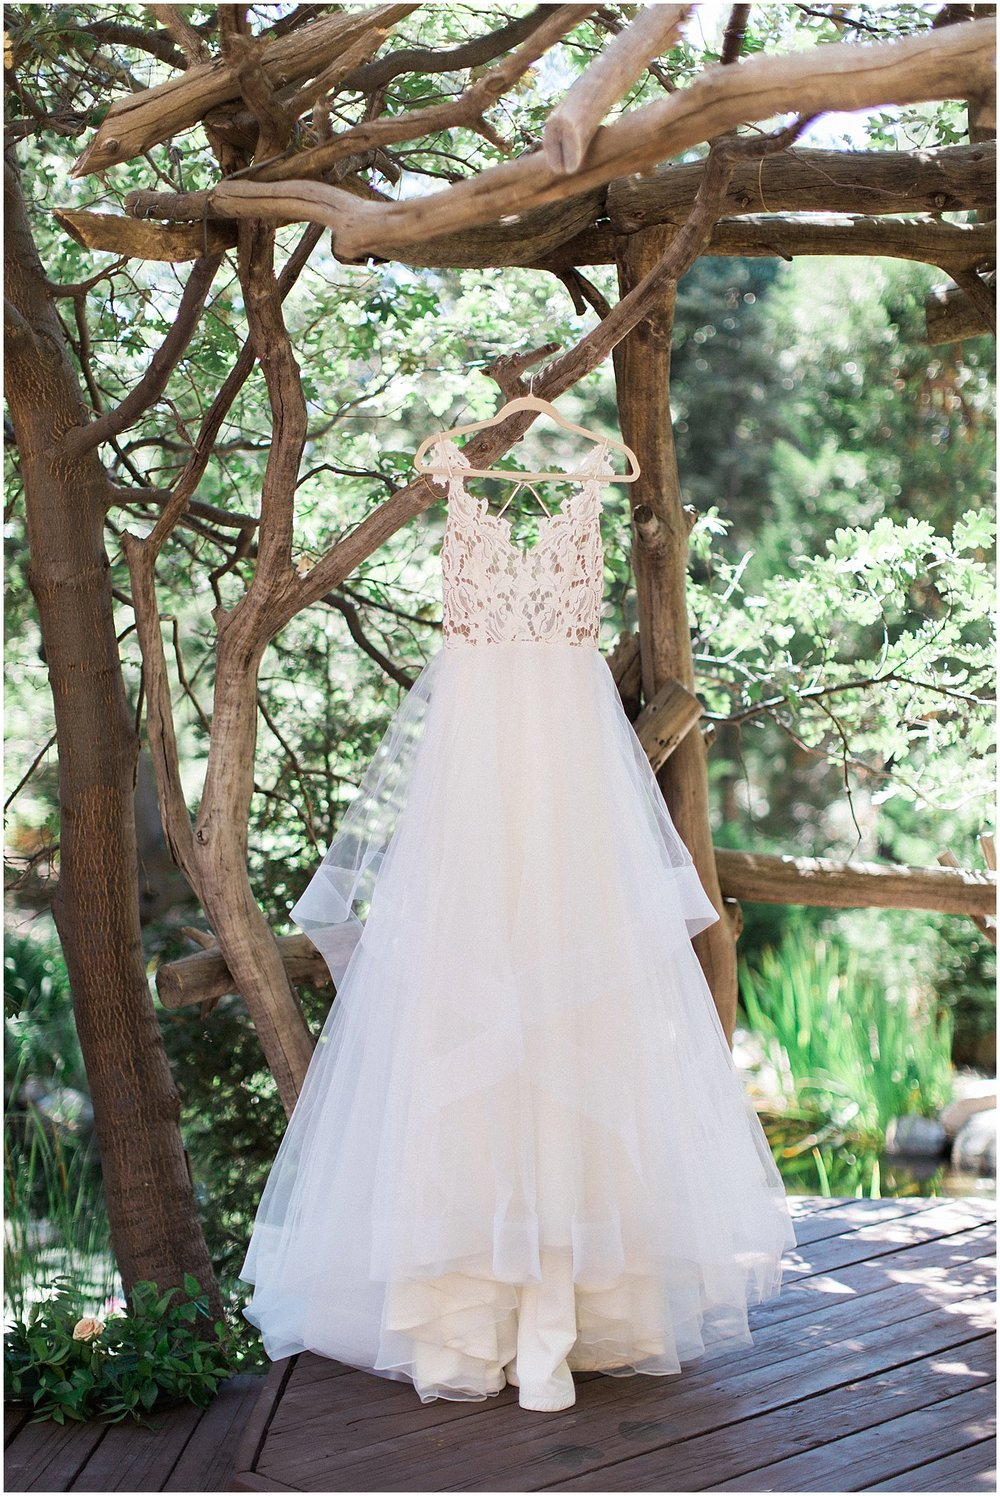 Hayley Paige Wedding Dress featured on Style Me Pretty | Arizona Wedding Planner | Megan Dileen Events